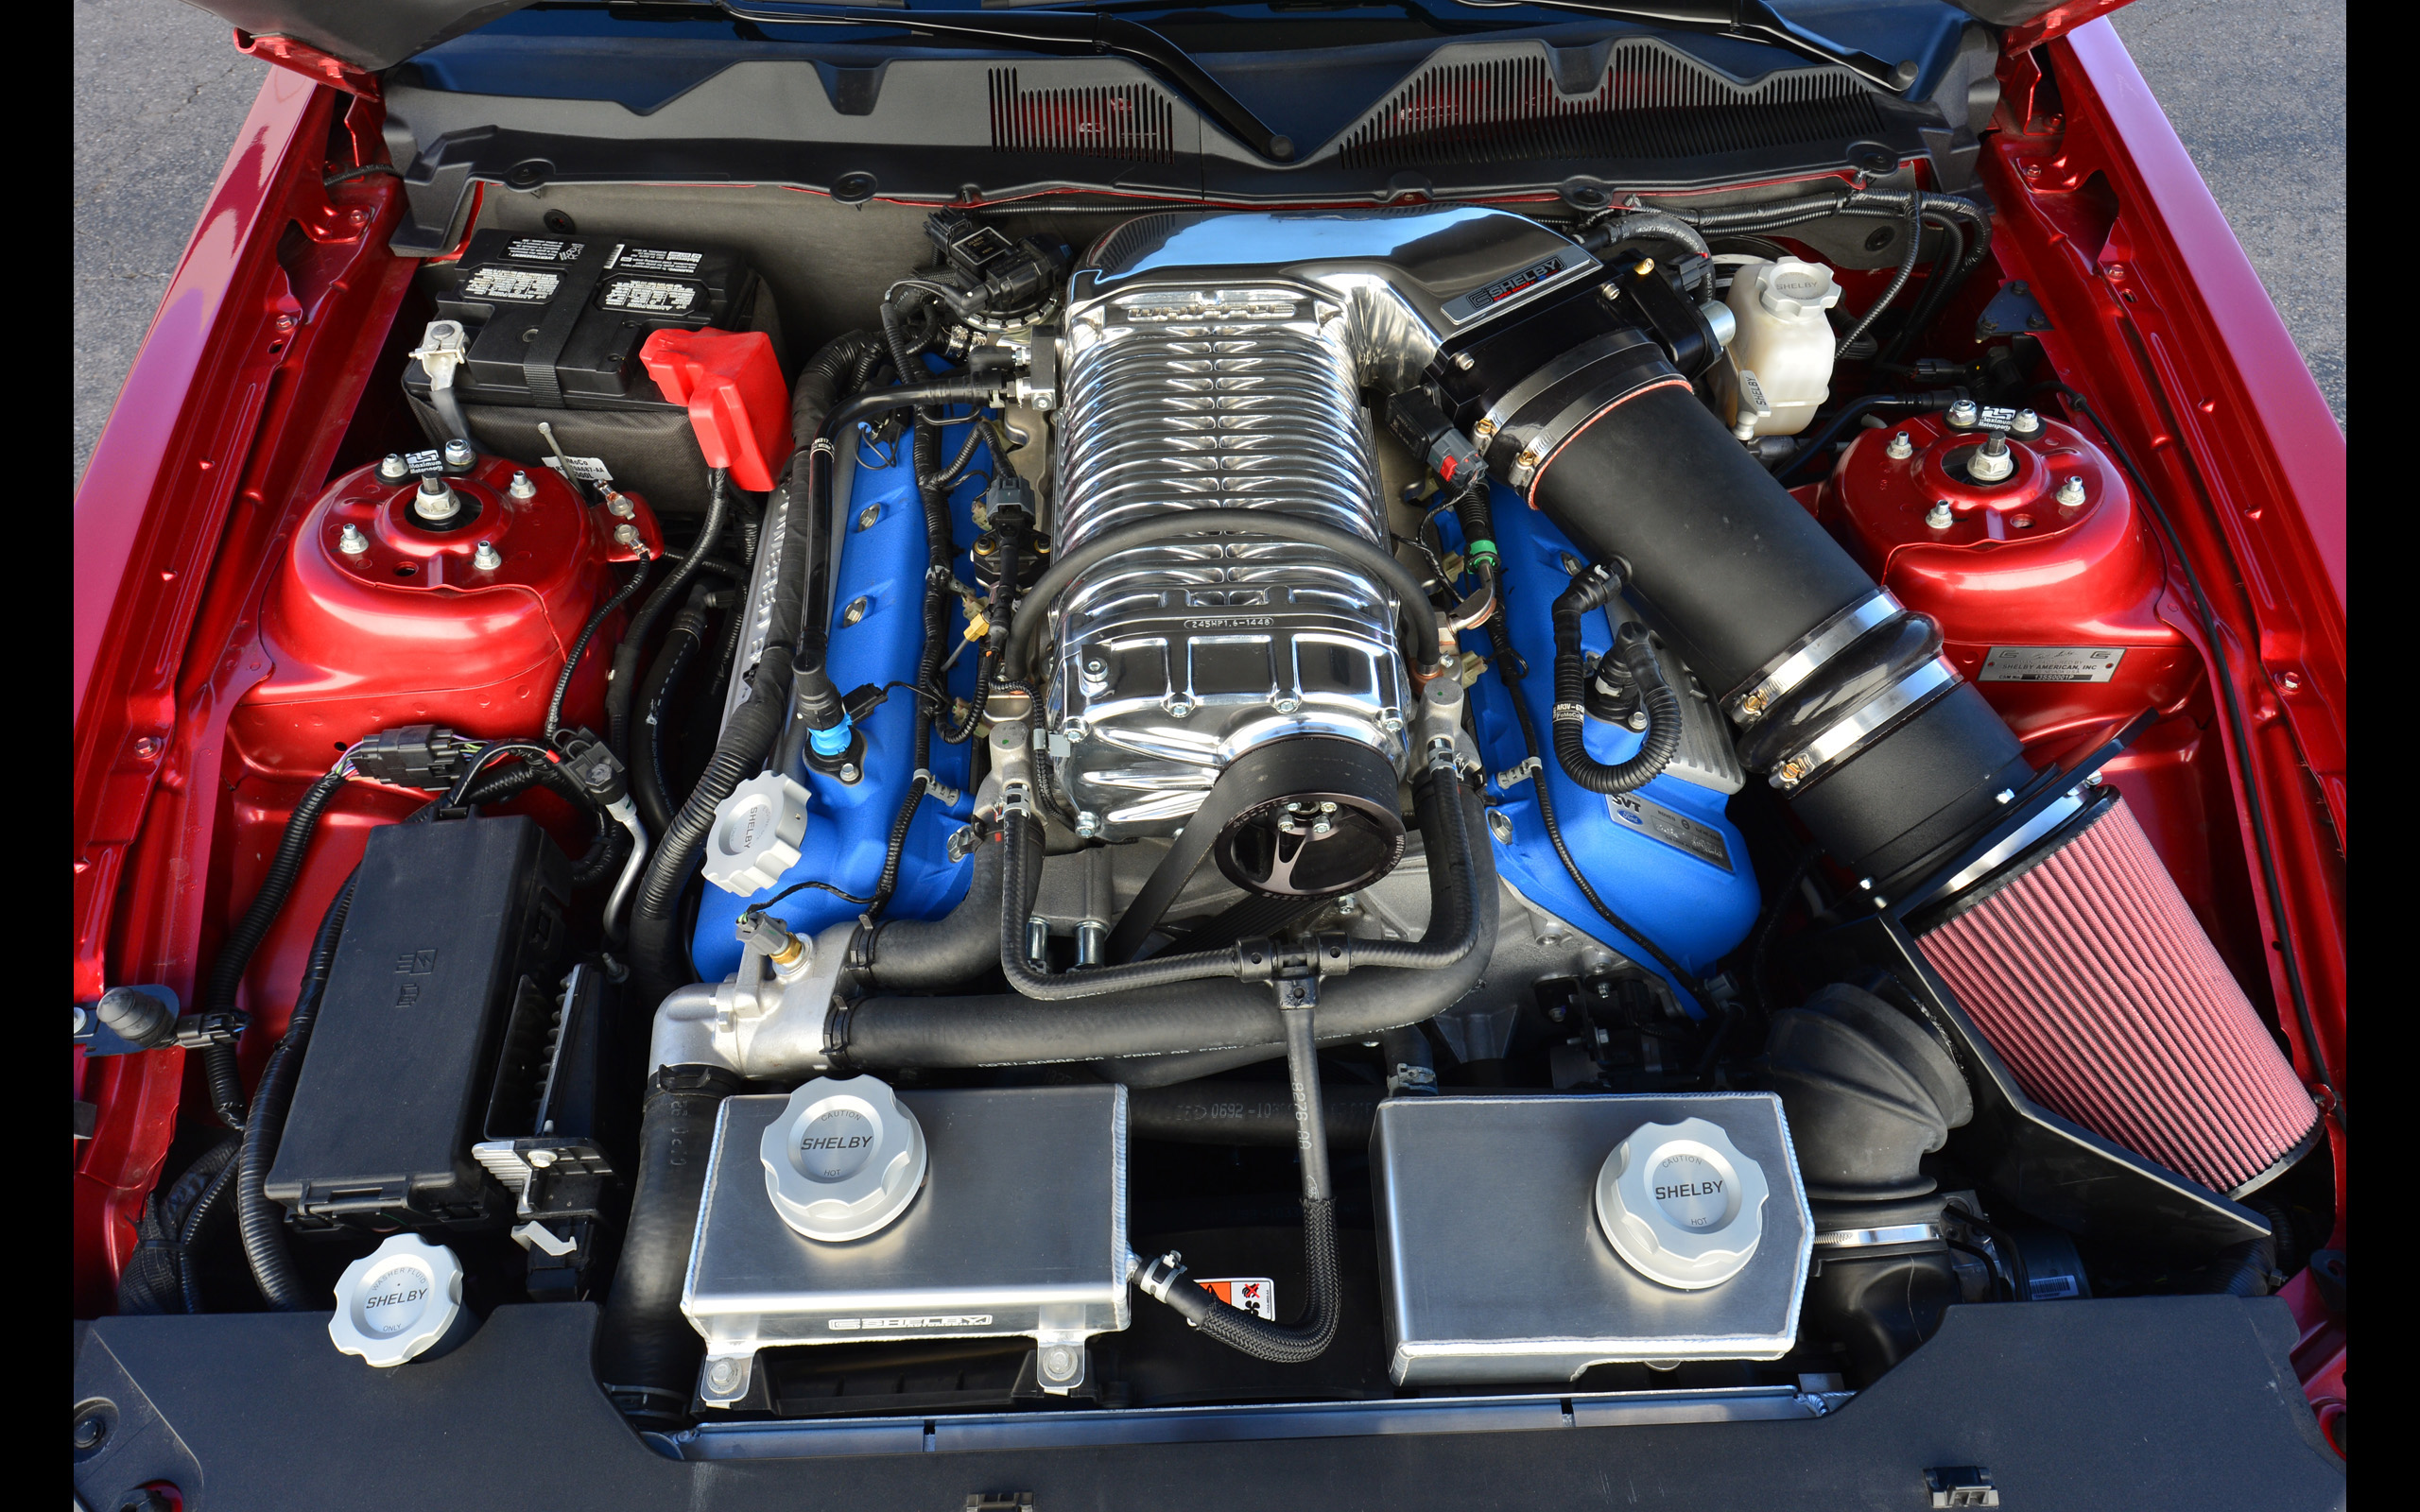 2013 shelby gt500 super snake muscle supercar ford mustang engine wallpaper 2560x1600 140510 wallpaperup